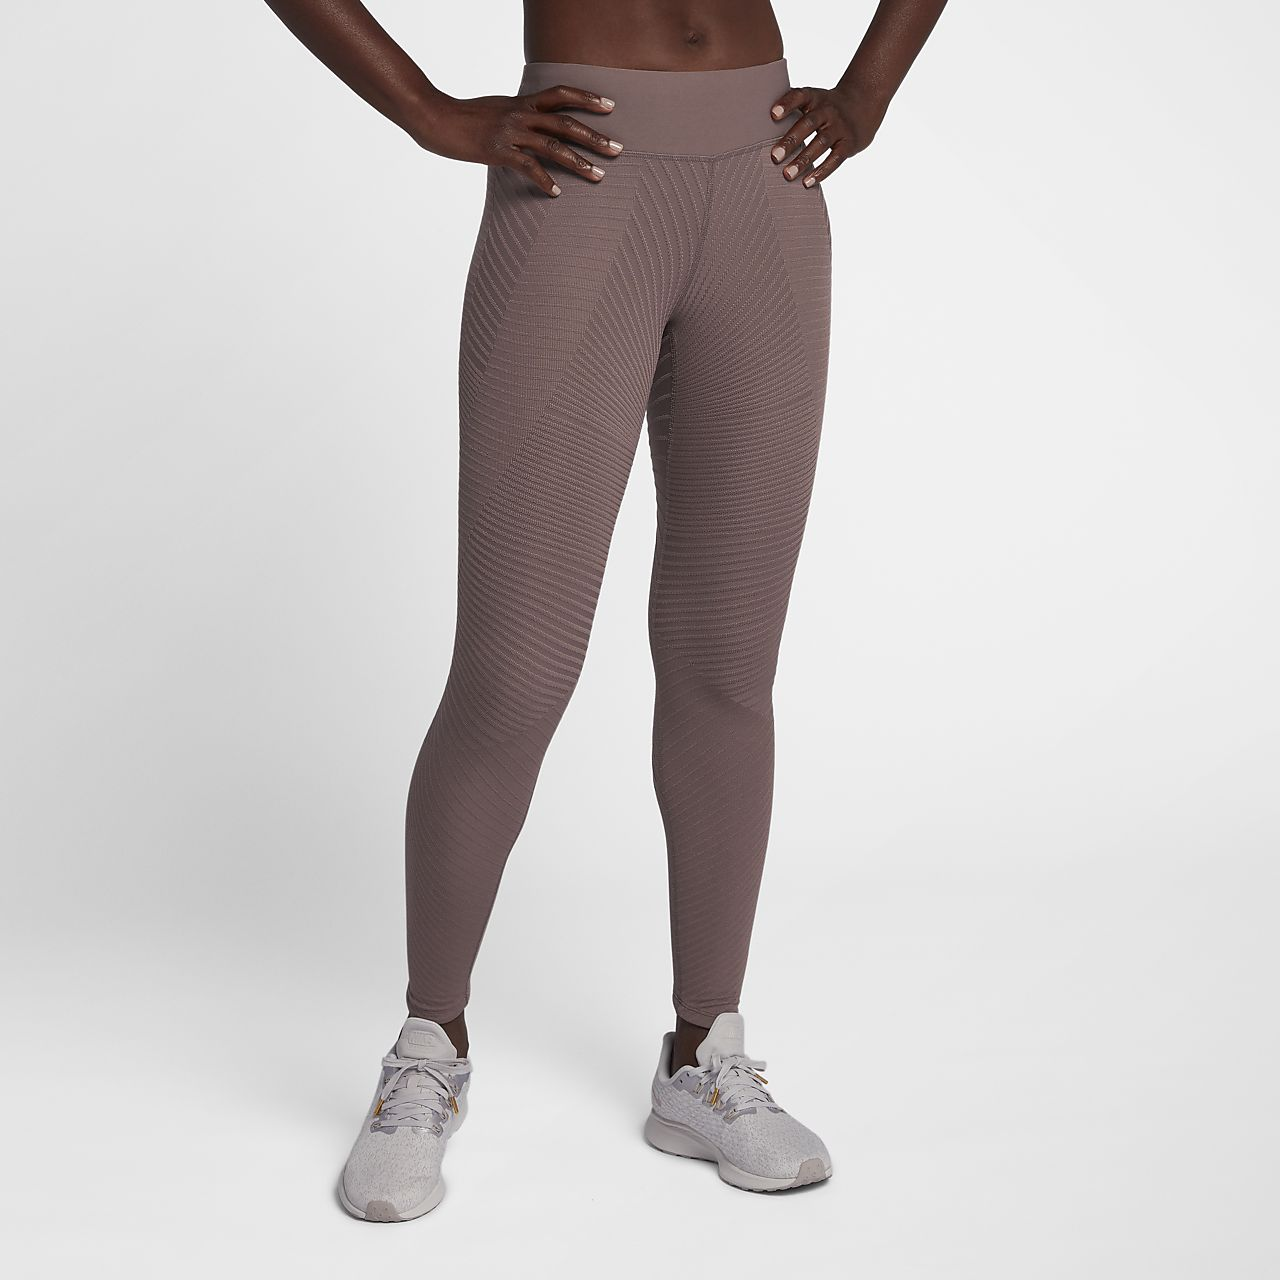 Nike Epic Lux Women s Texture Mid-Rise Running Tights. Nike.com LU 01c0bbe0c